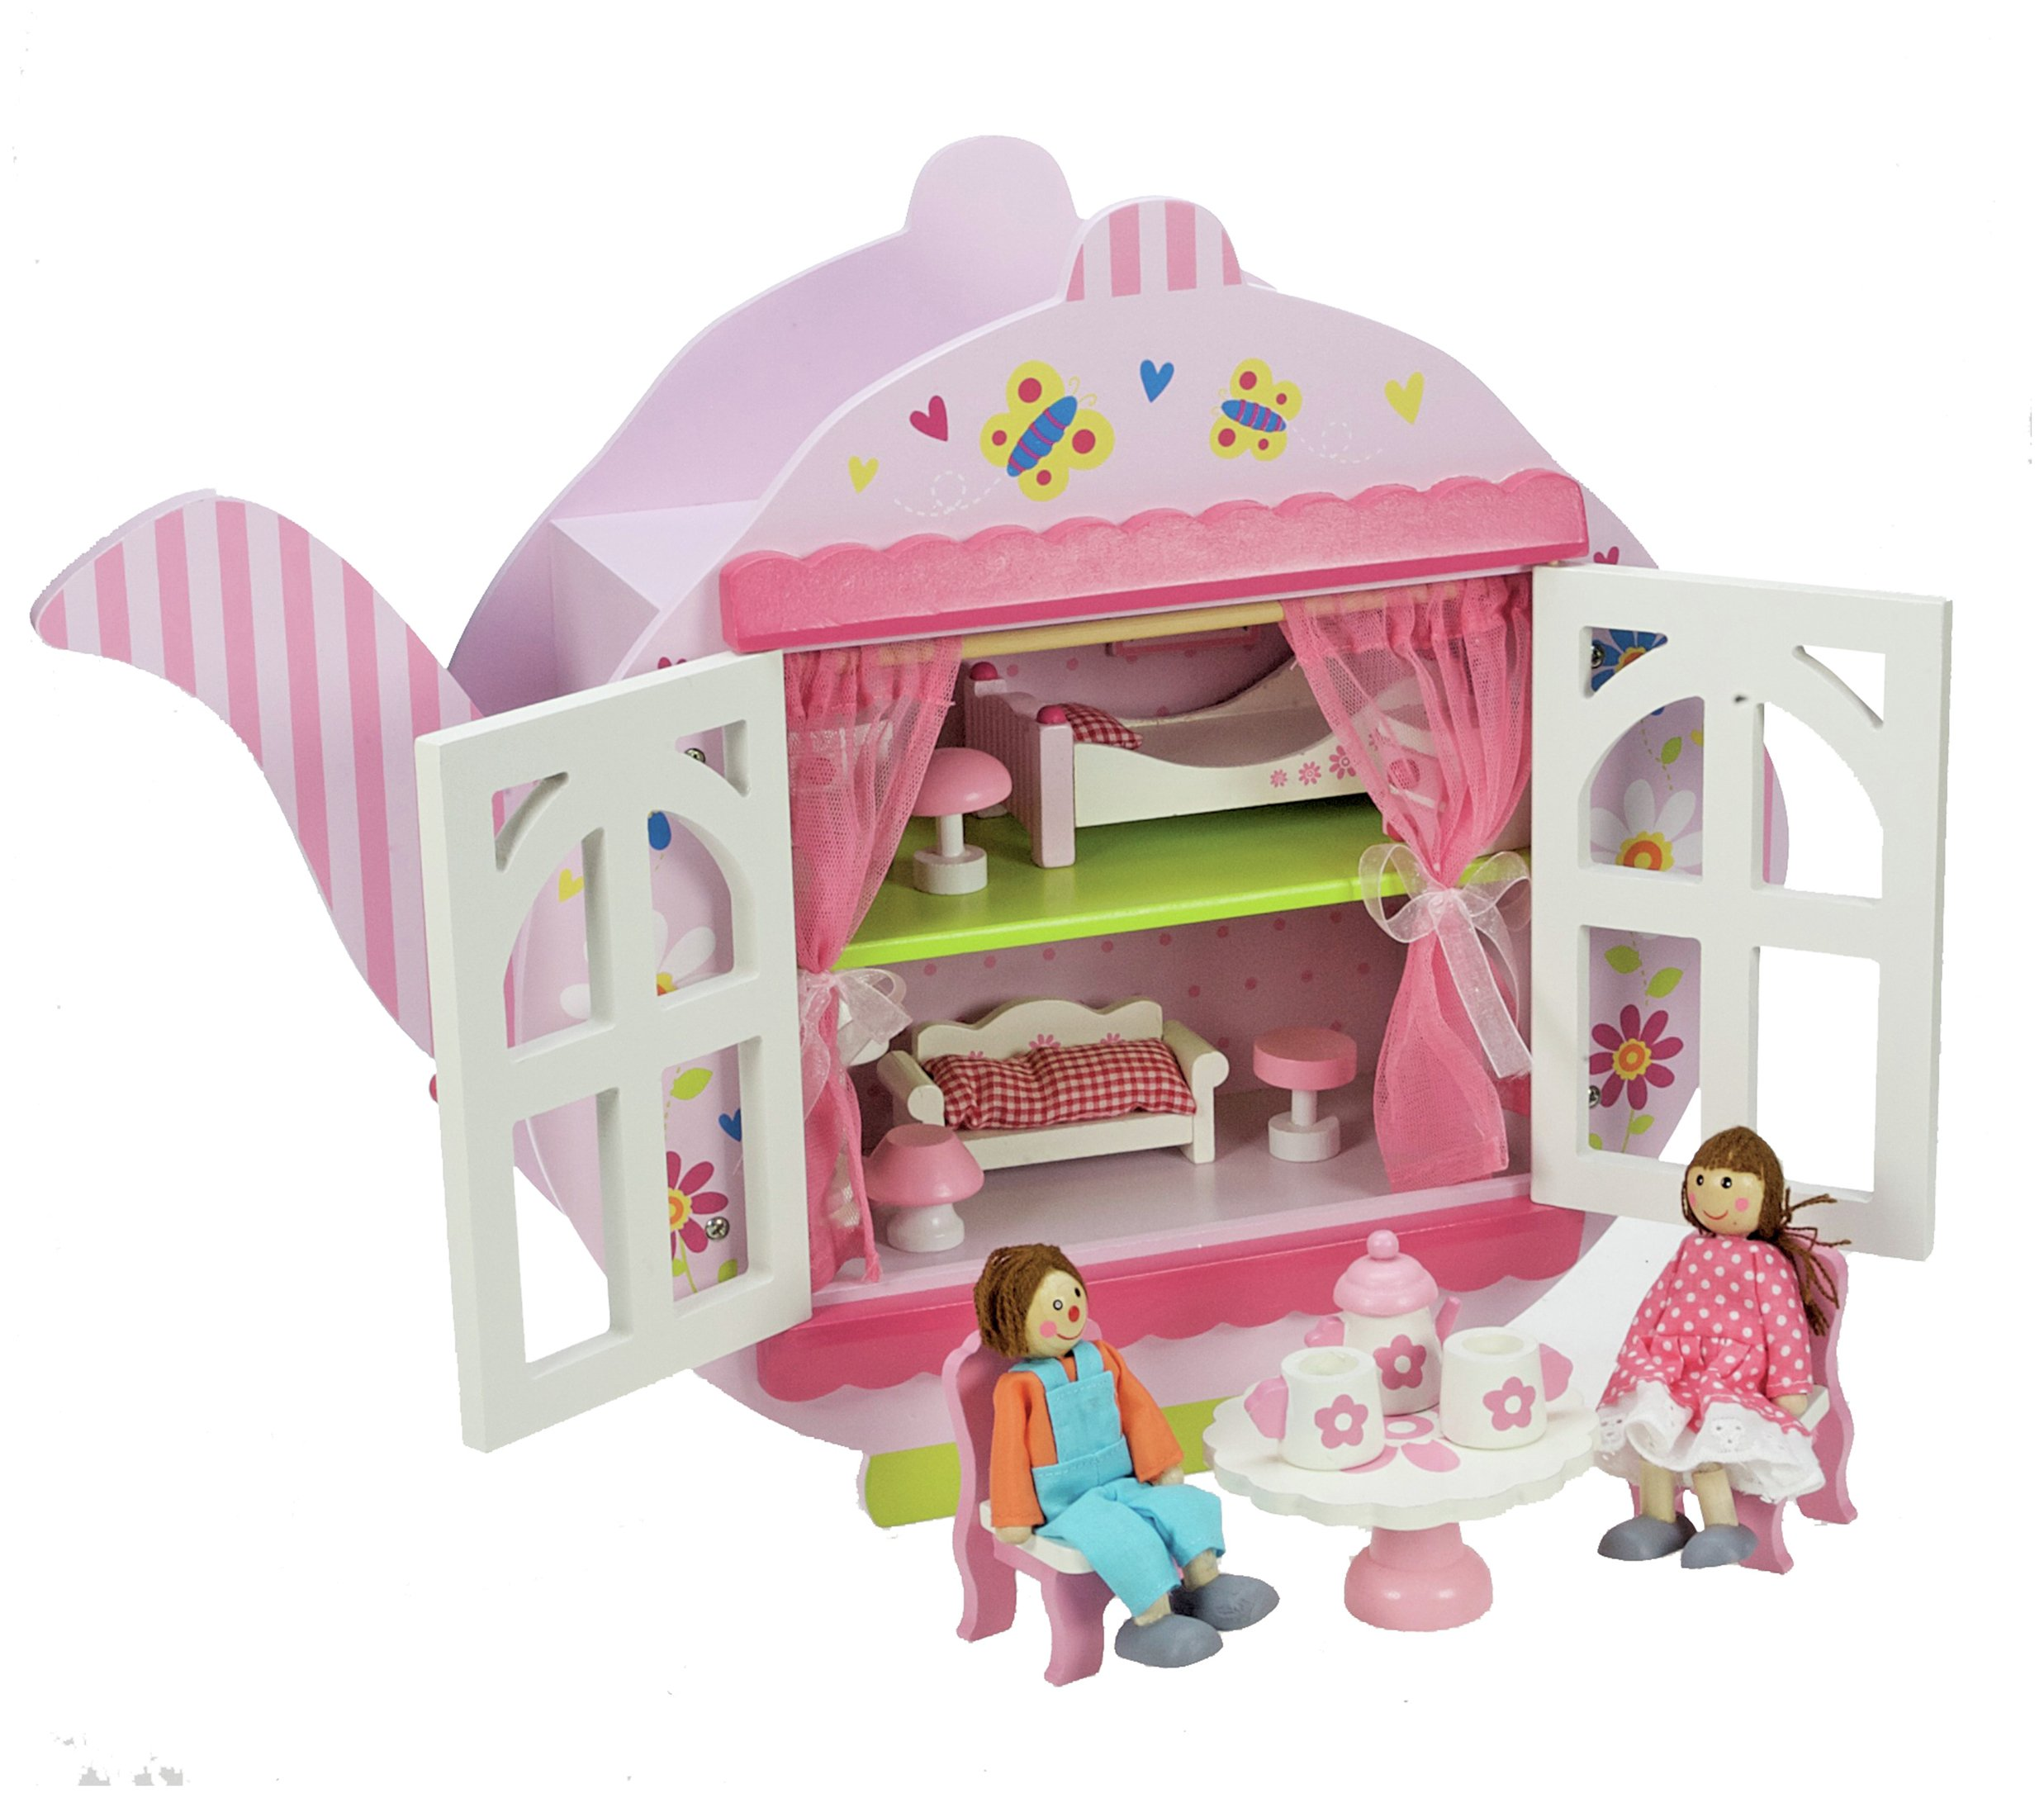 Image of Wooden Teapot Dolls House.